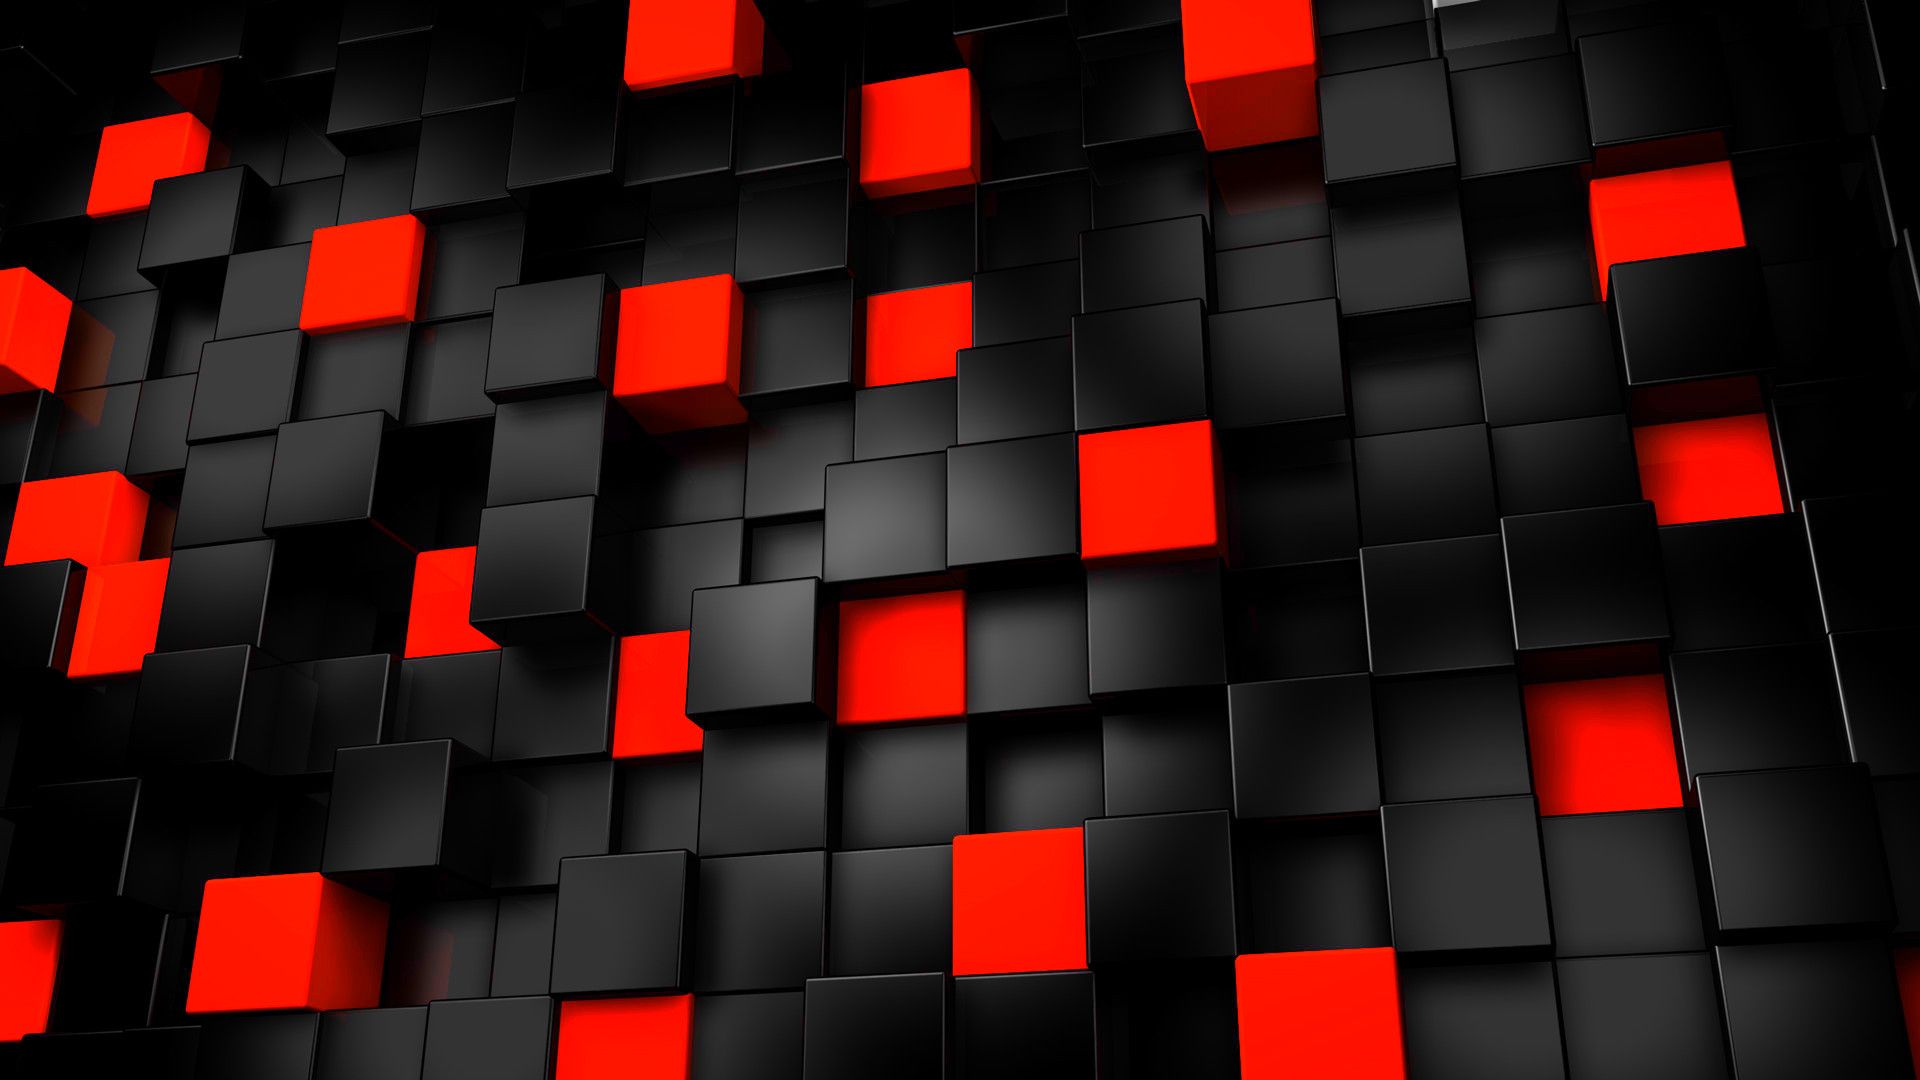 Wallpaper Hd 1080p Black And Red Black And Blue Wallpaper Cool Blue Wallpaper Abstract Wallpaper